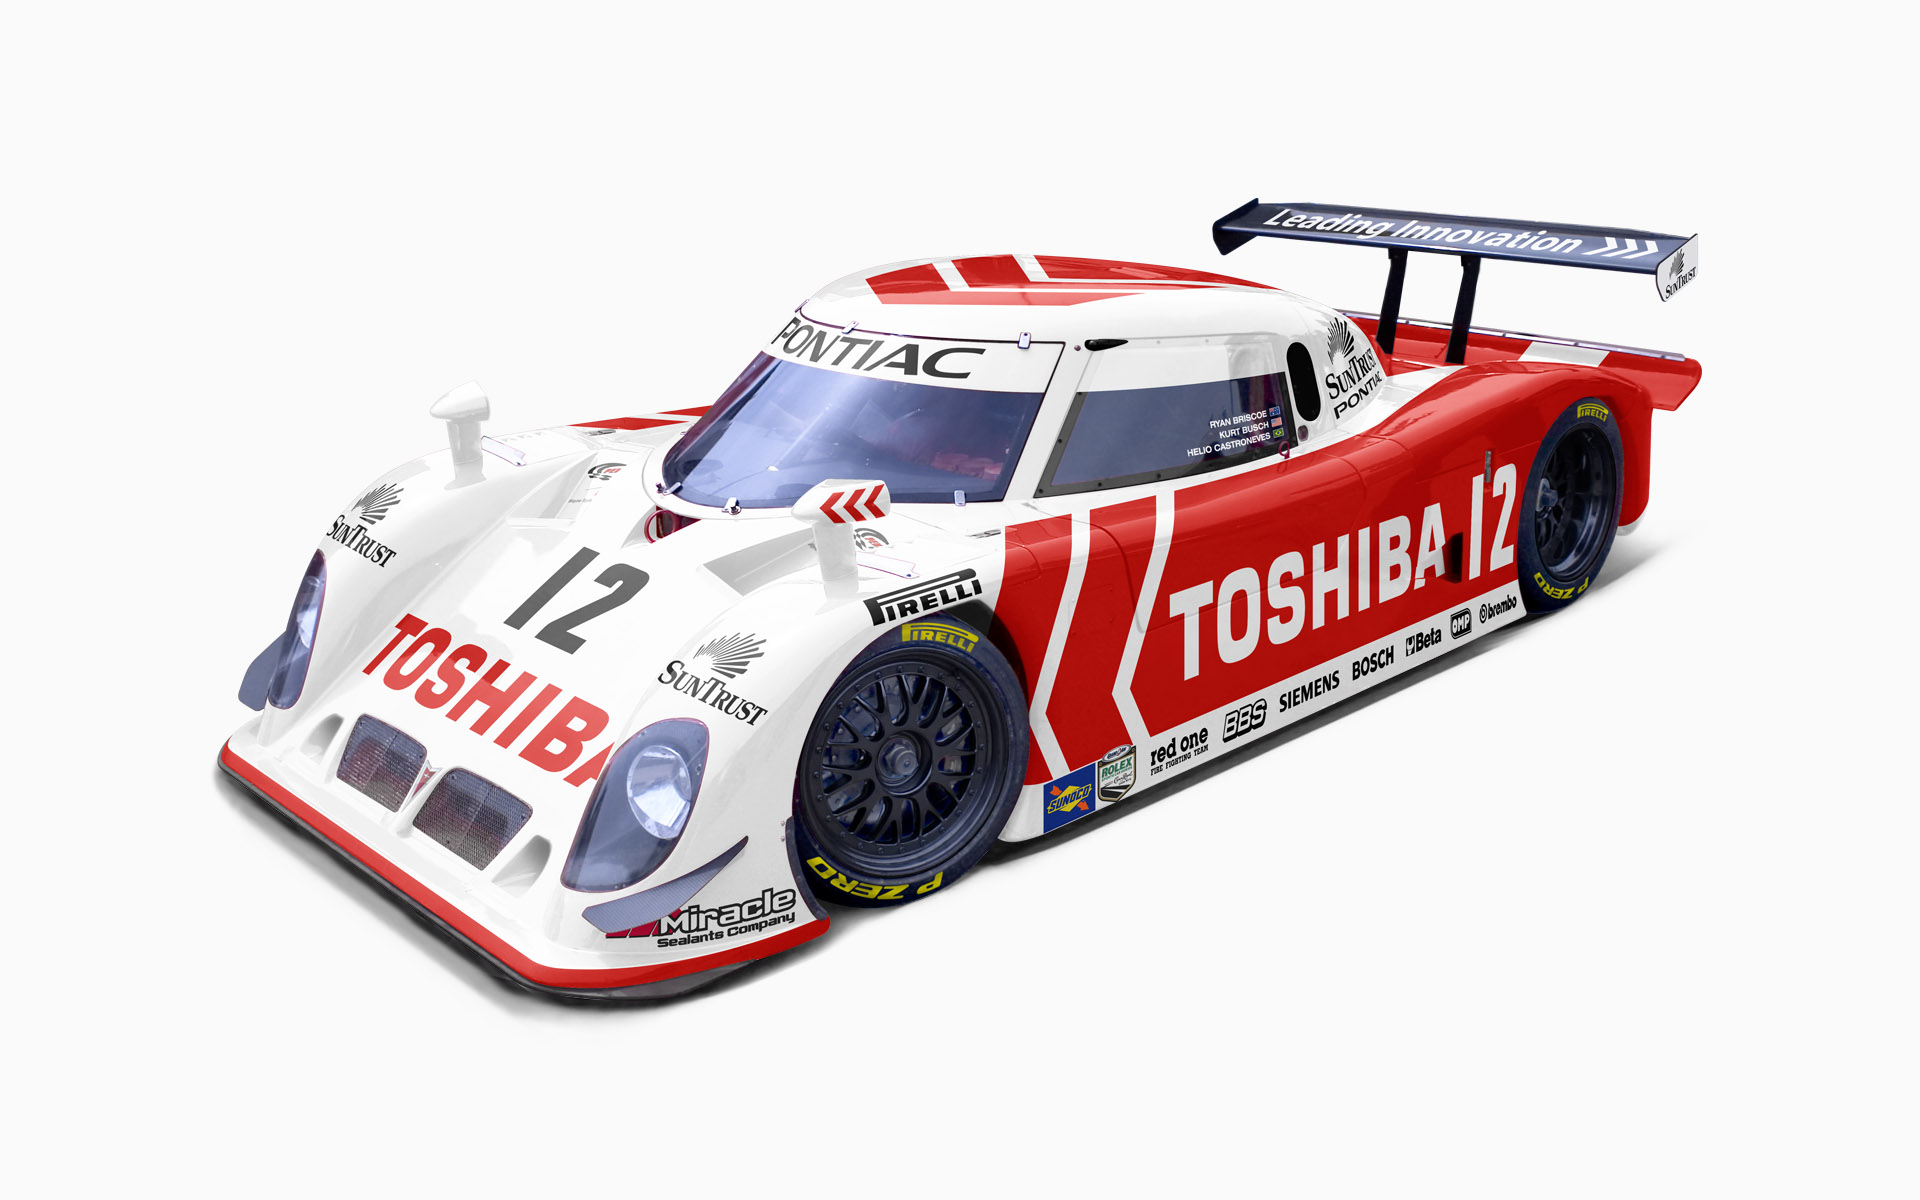 Wayne Taylor Racing Toshiba Riley MKXI Daytona Prototype Livery Visualization